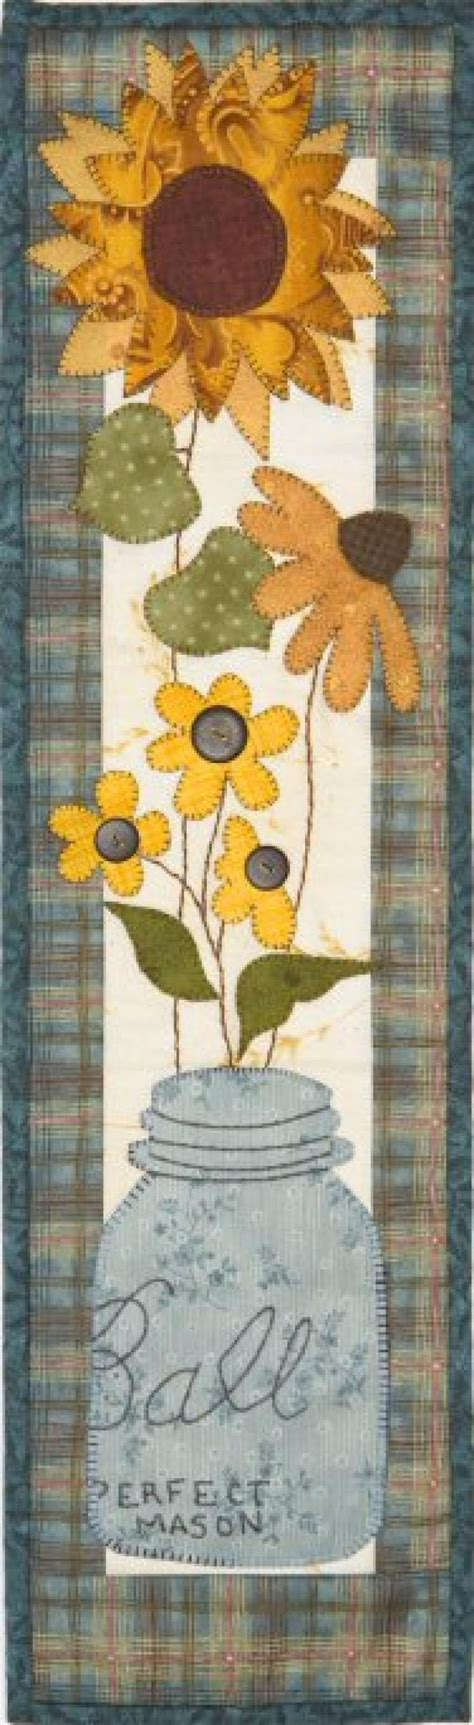 applique country 123 best images about patterns of applique on